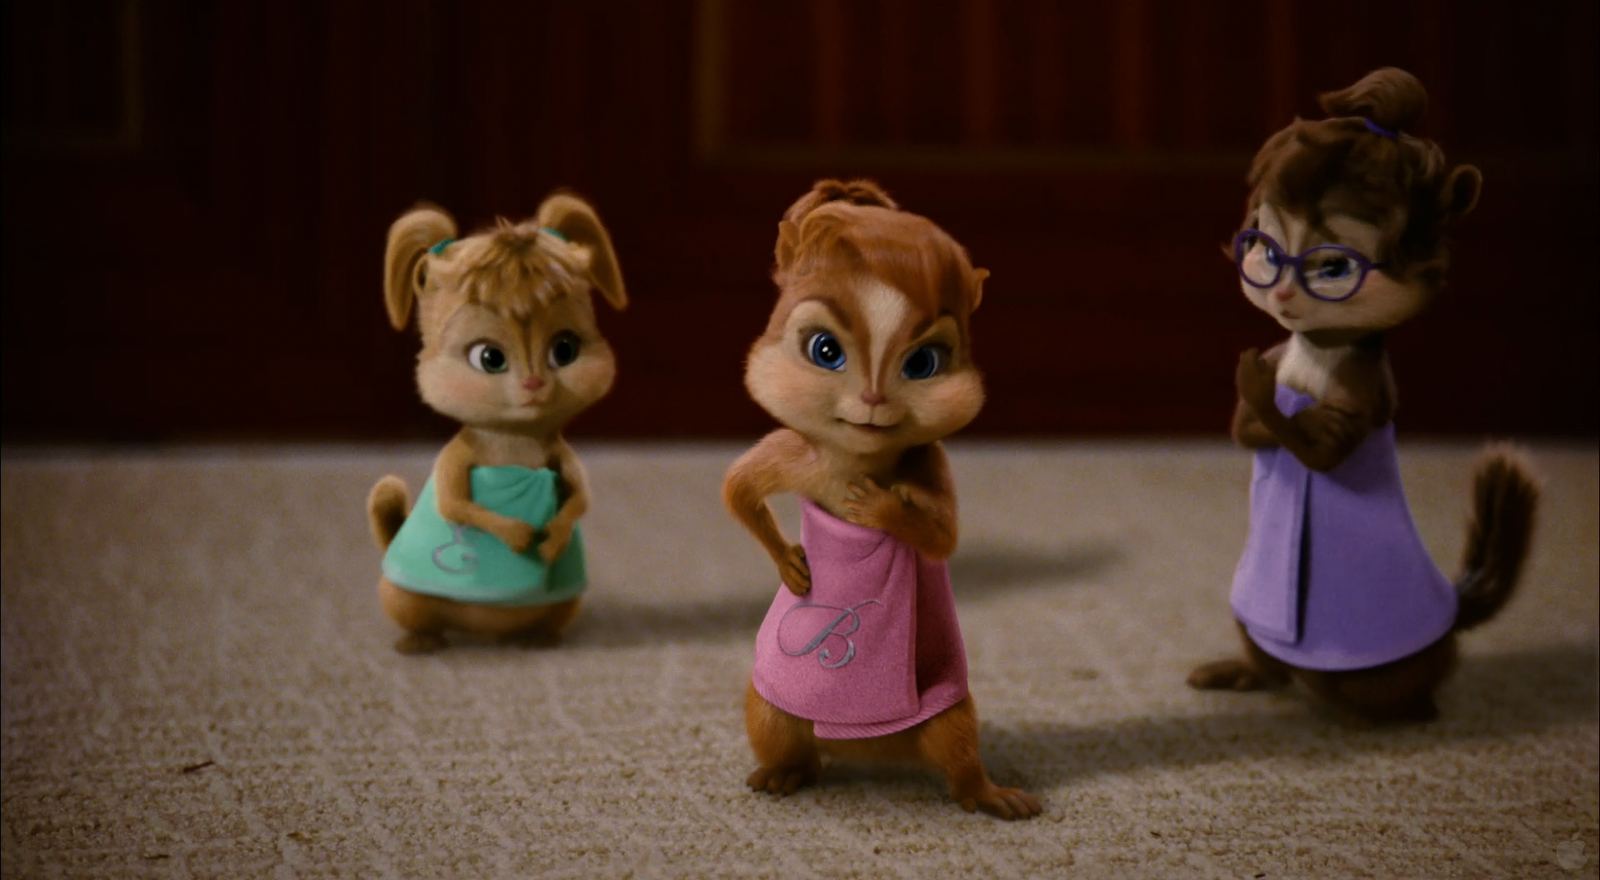 ... Wallpaper: Alvin and the Chipmunks Chipwrecked Movie Wallpapers